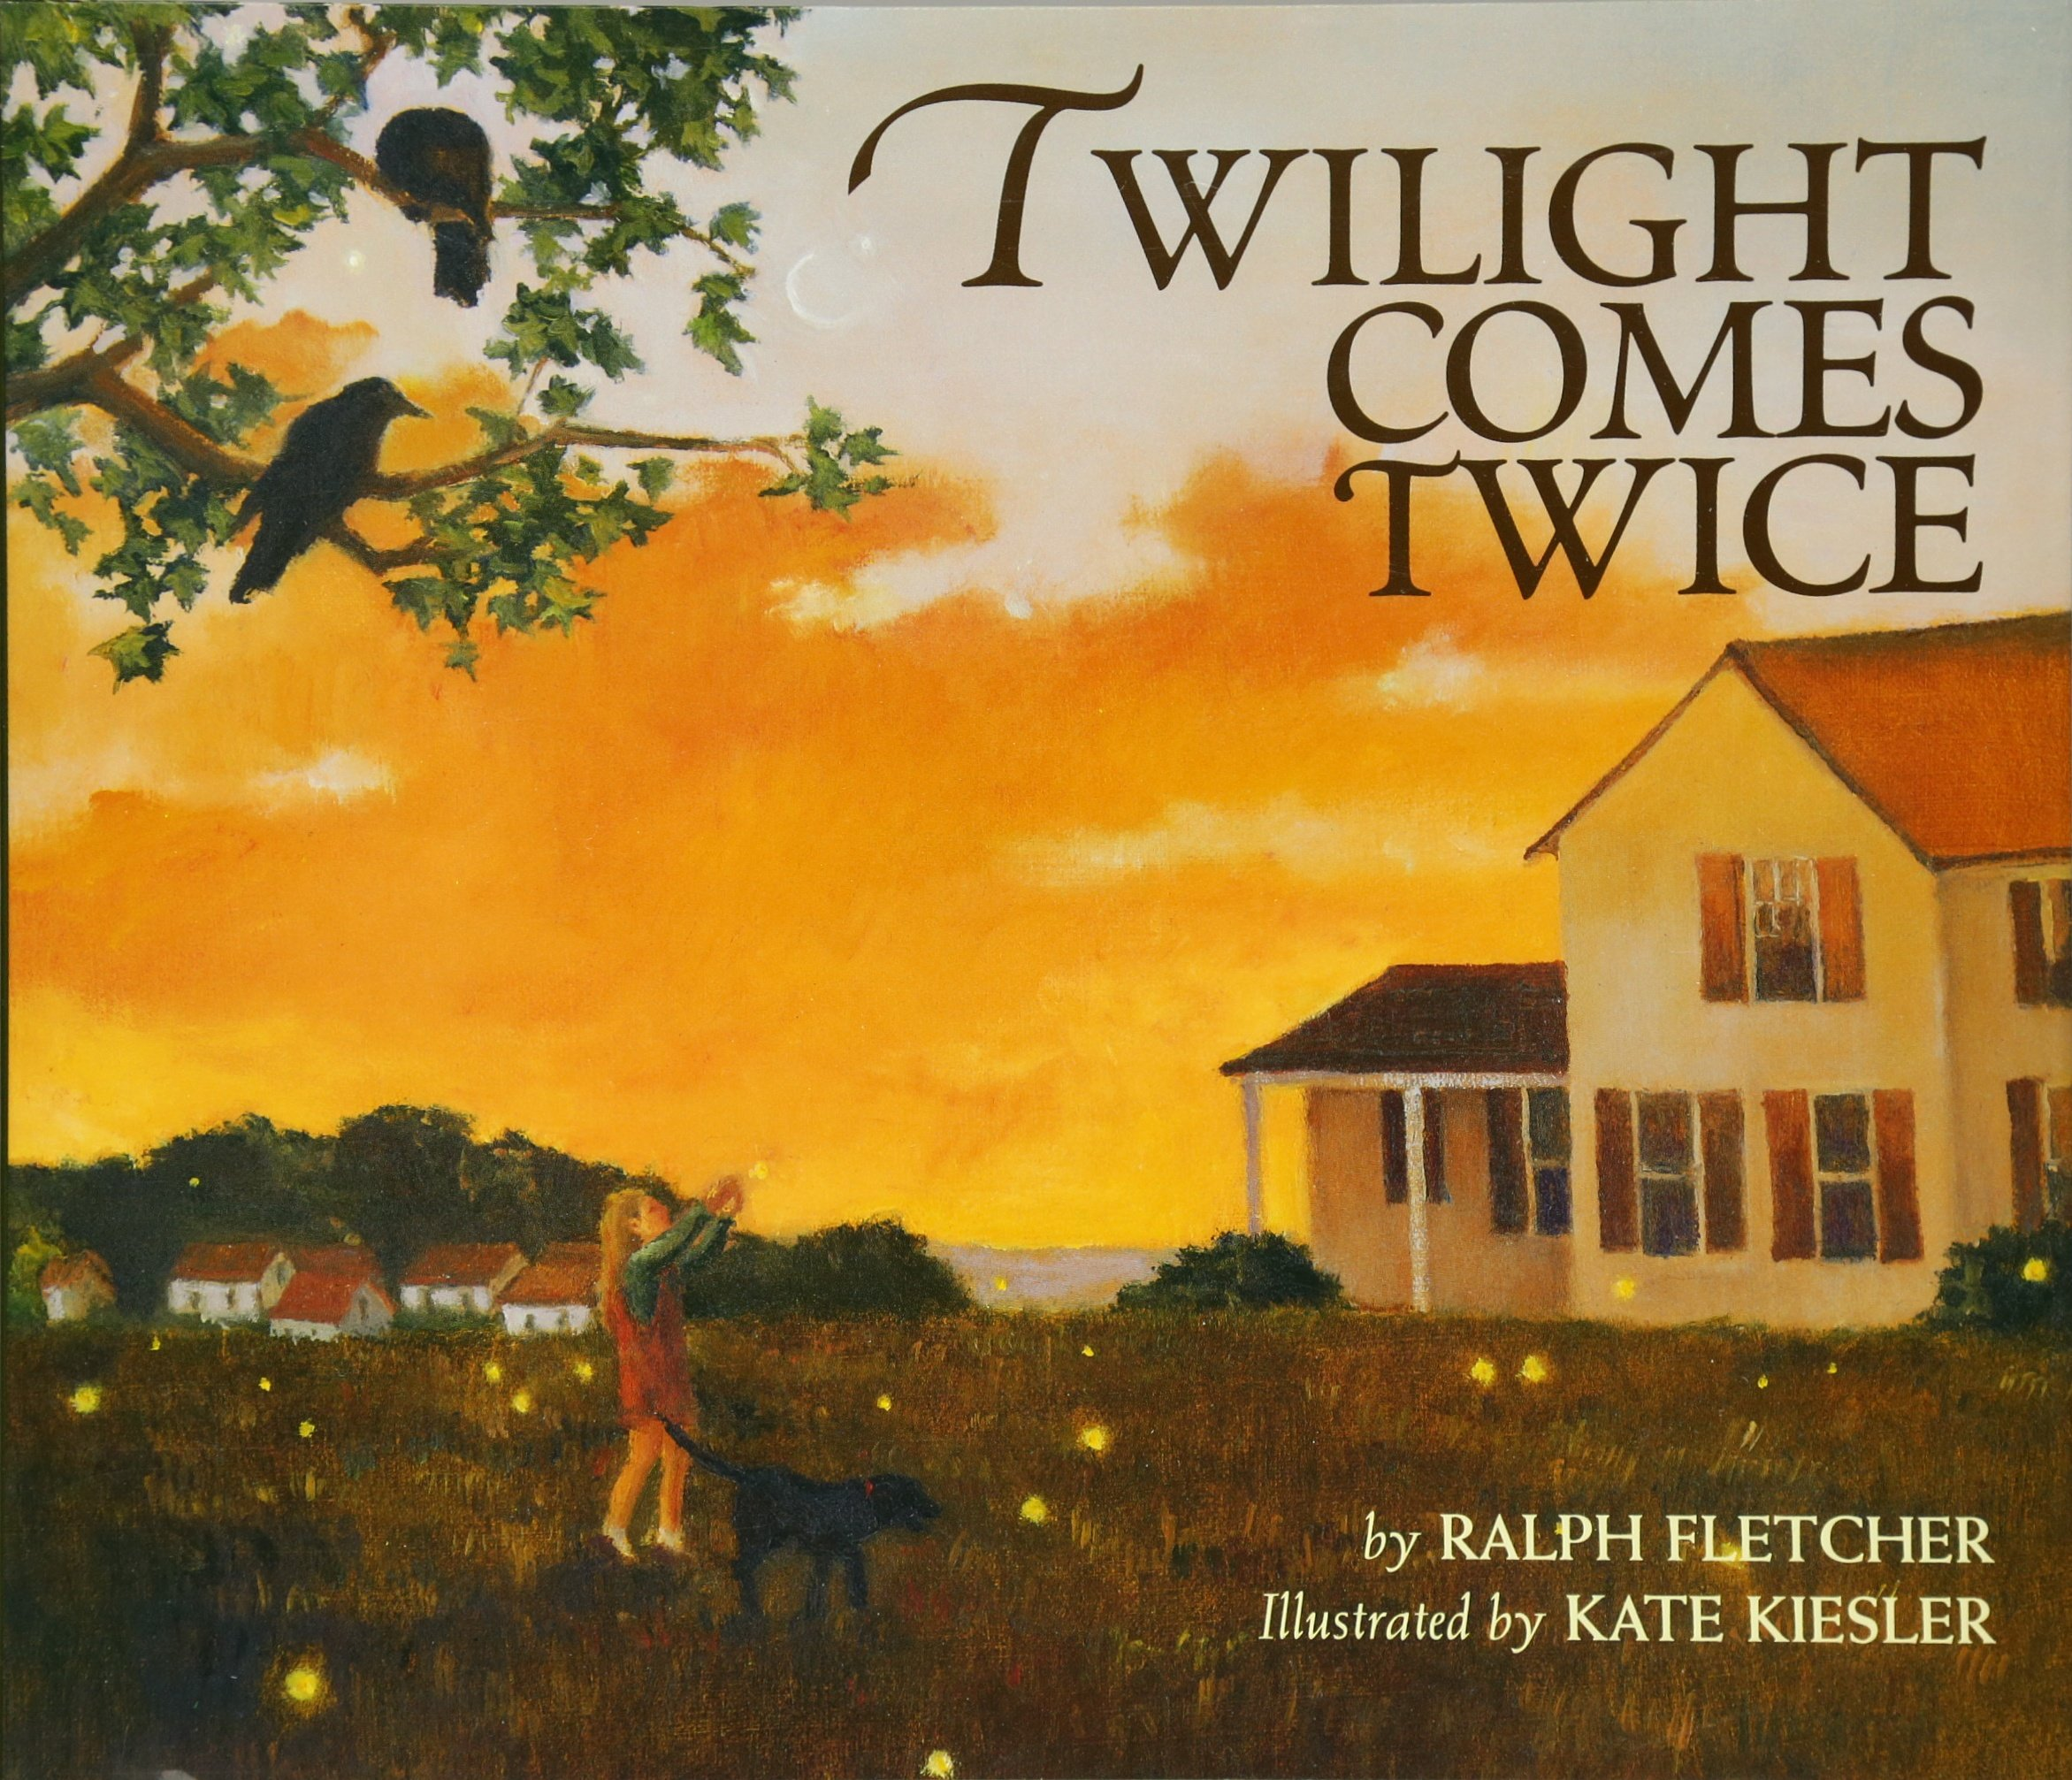 Amazon.com: Twilight Comes Twice (0046442848268): Ralph Fletcher, Kate  Kiesler: Books